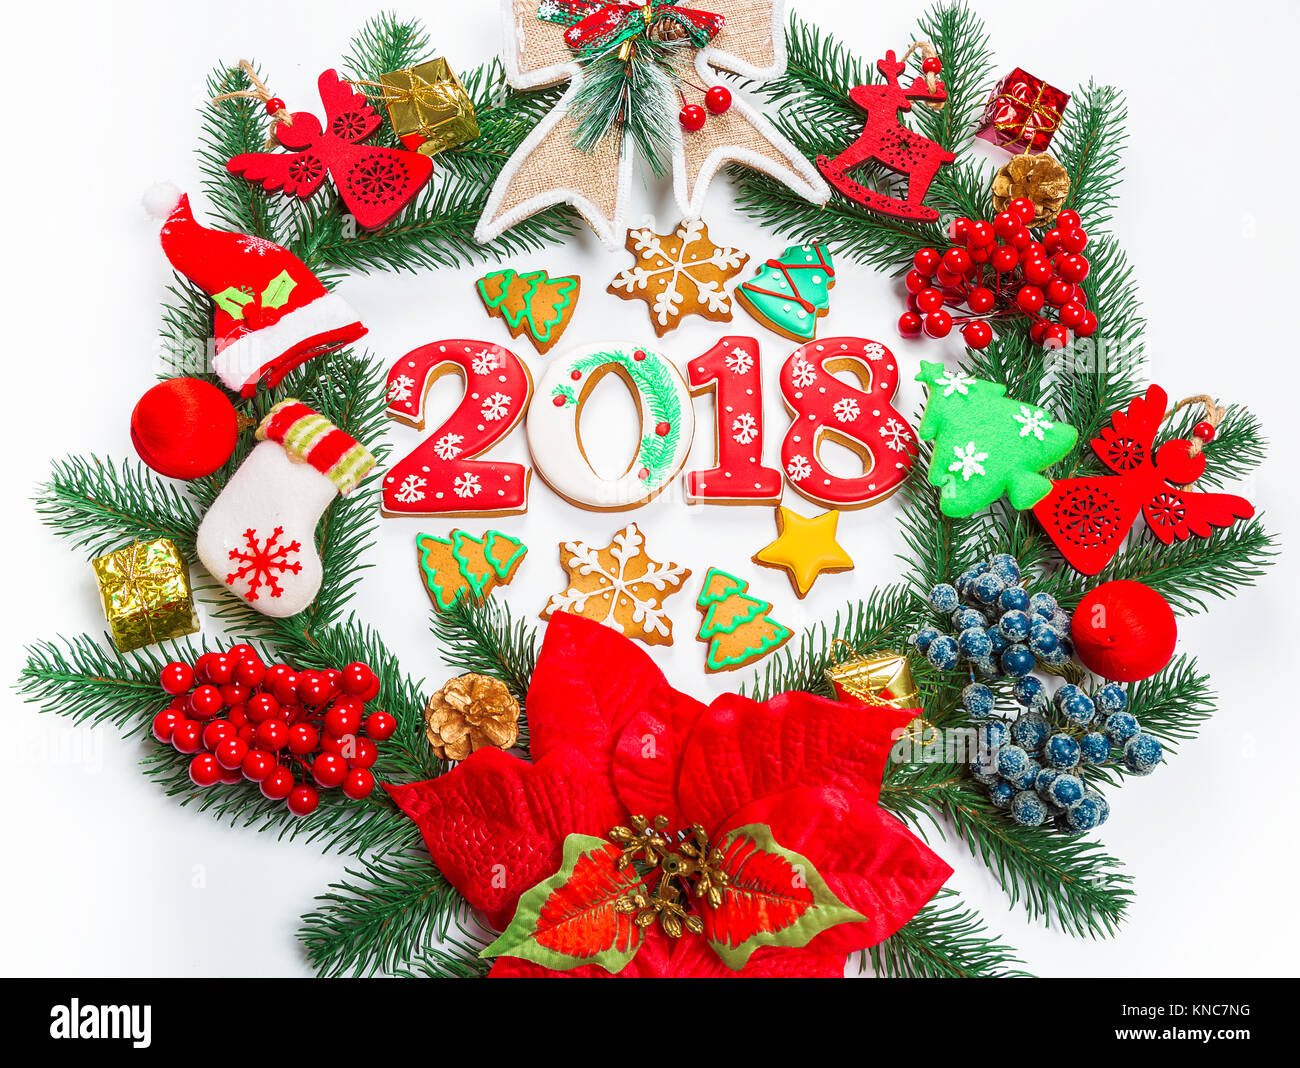 Advent holiday gingerbread wreath stock photos advent holiday christmas wreath with decorations with gingerbread 2018 branch of xmas tree on white background buycottarizona Image collections